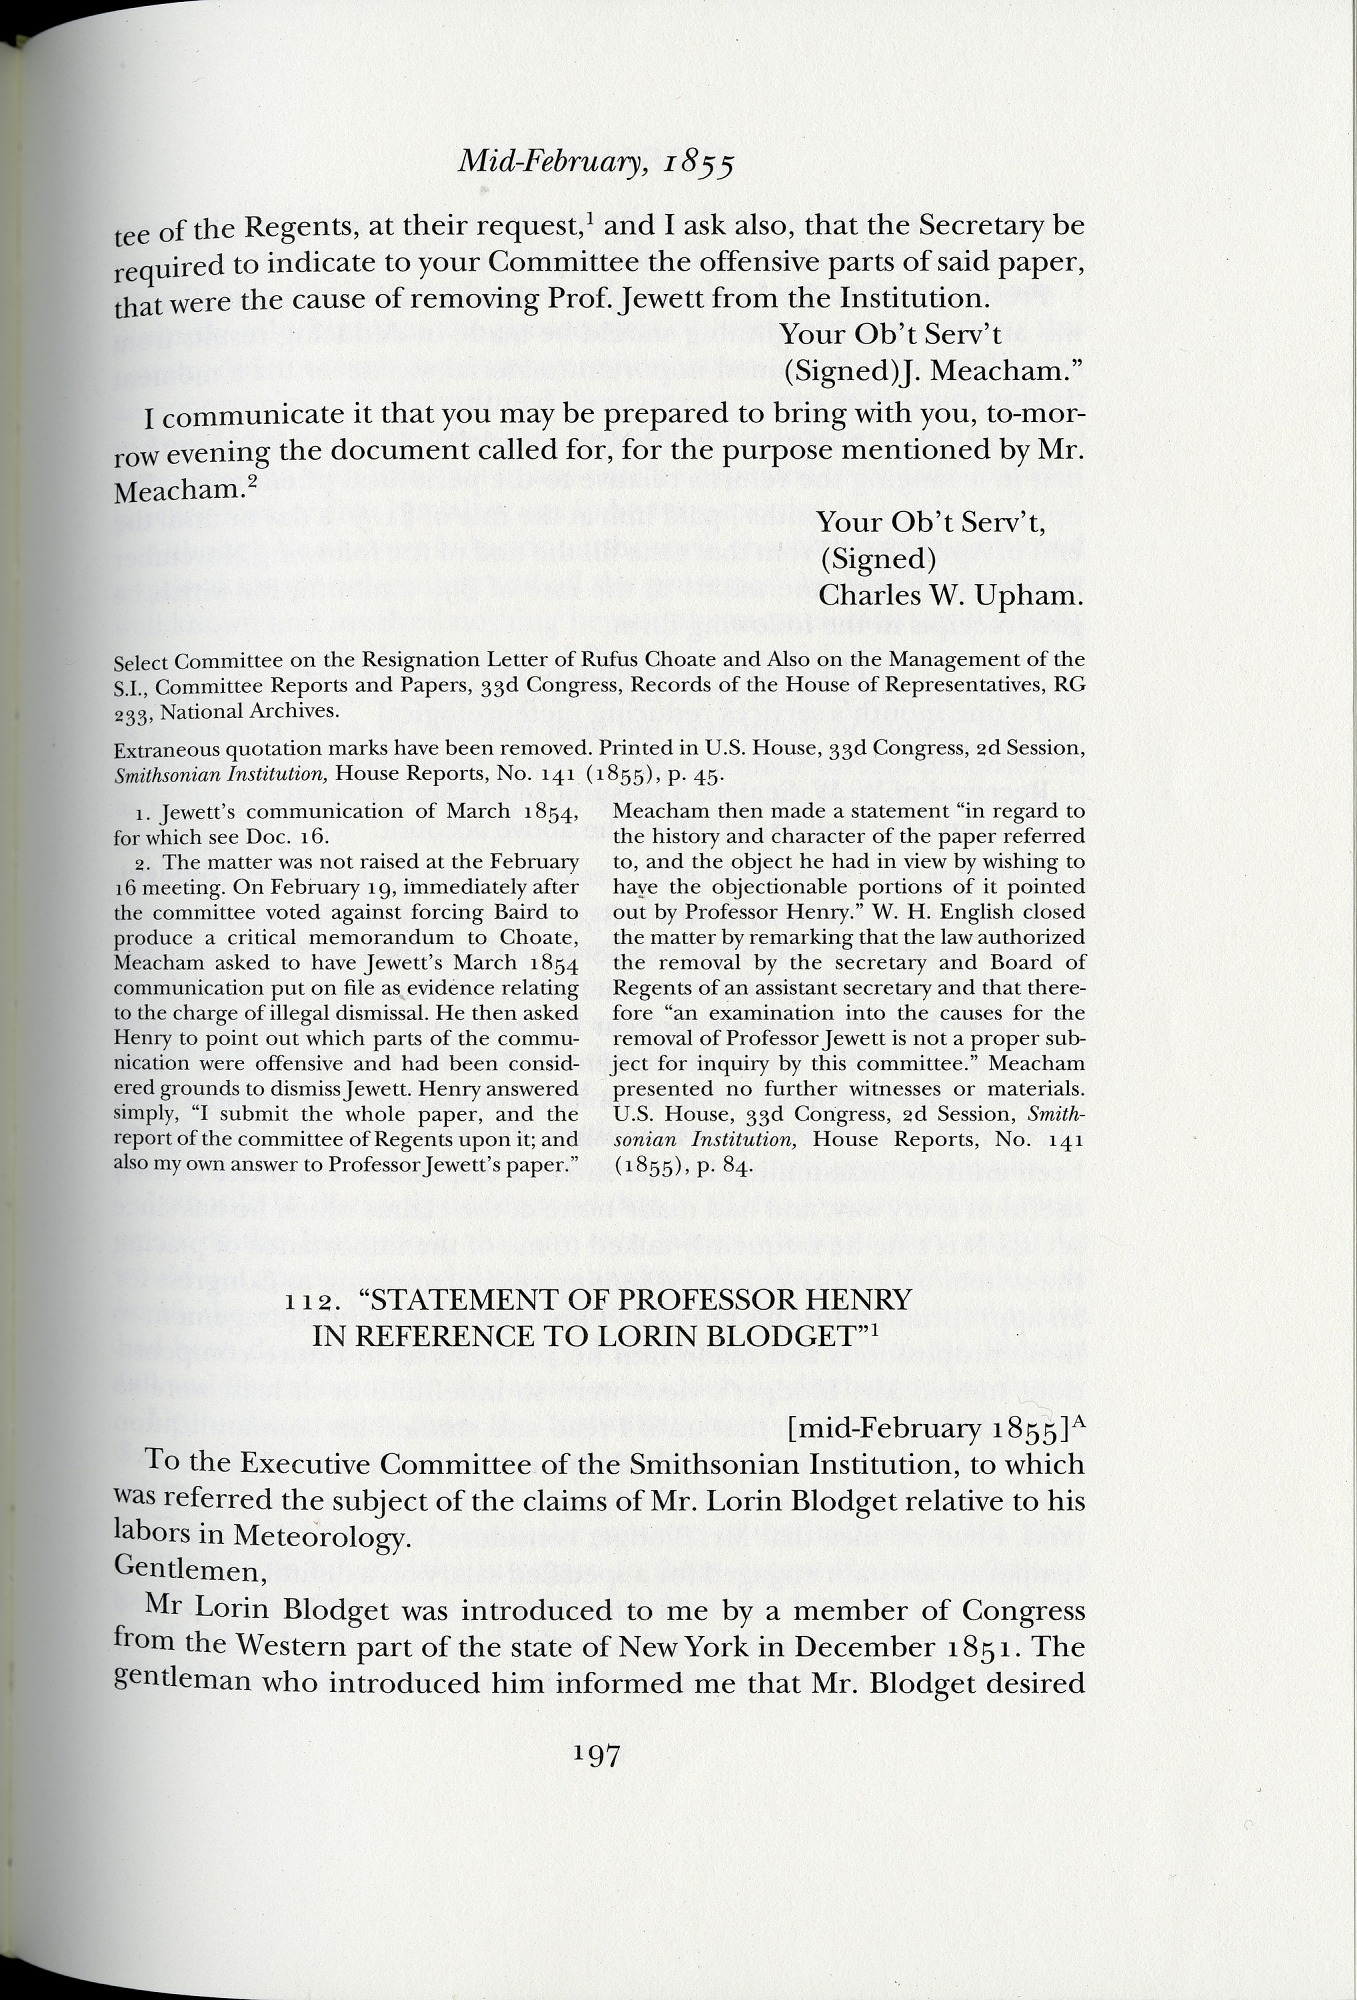 """""""Statement of Professor Henry in Reference to Lorin Blodget"""" (mid-February 1855)"""